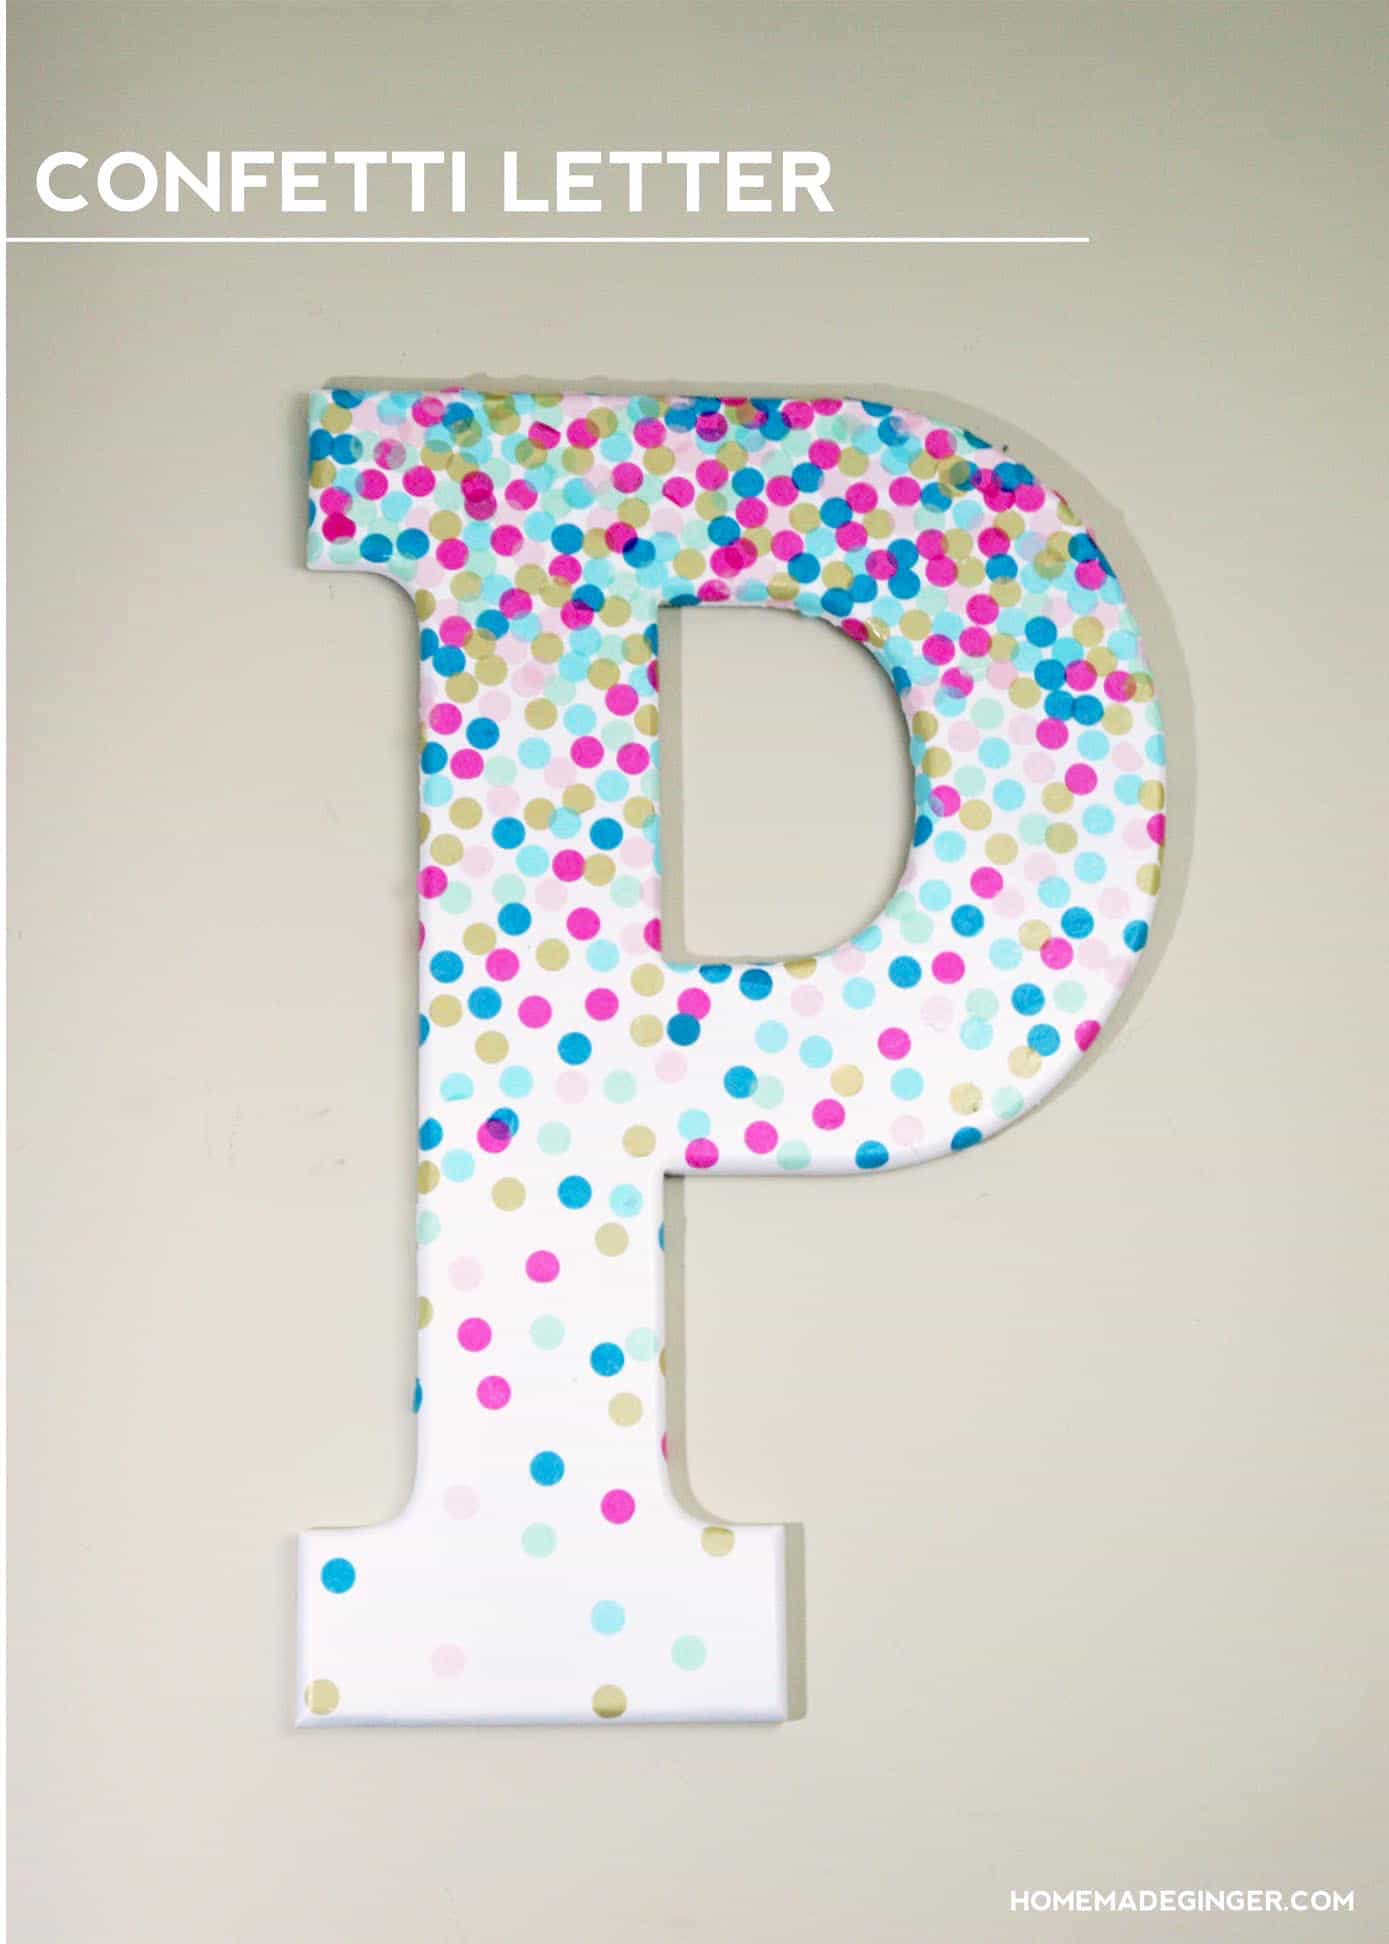 Confetti Decorative Letters For Wall Decor  Mod Podge Rocks